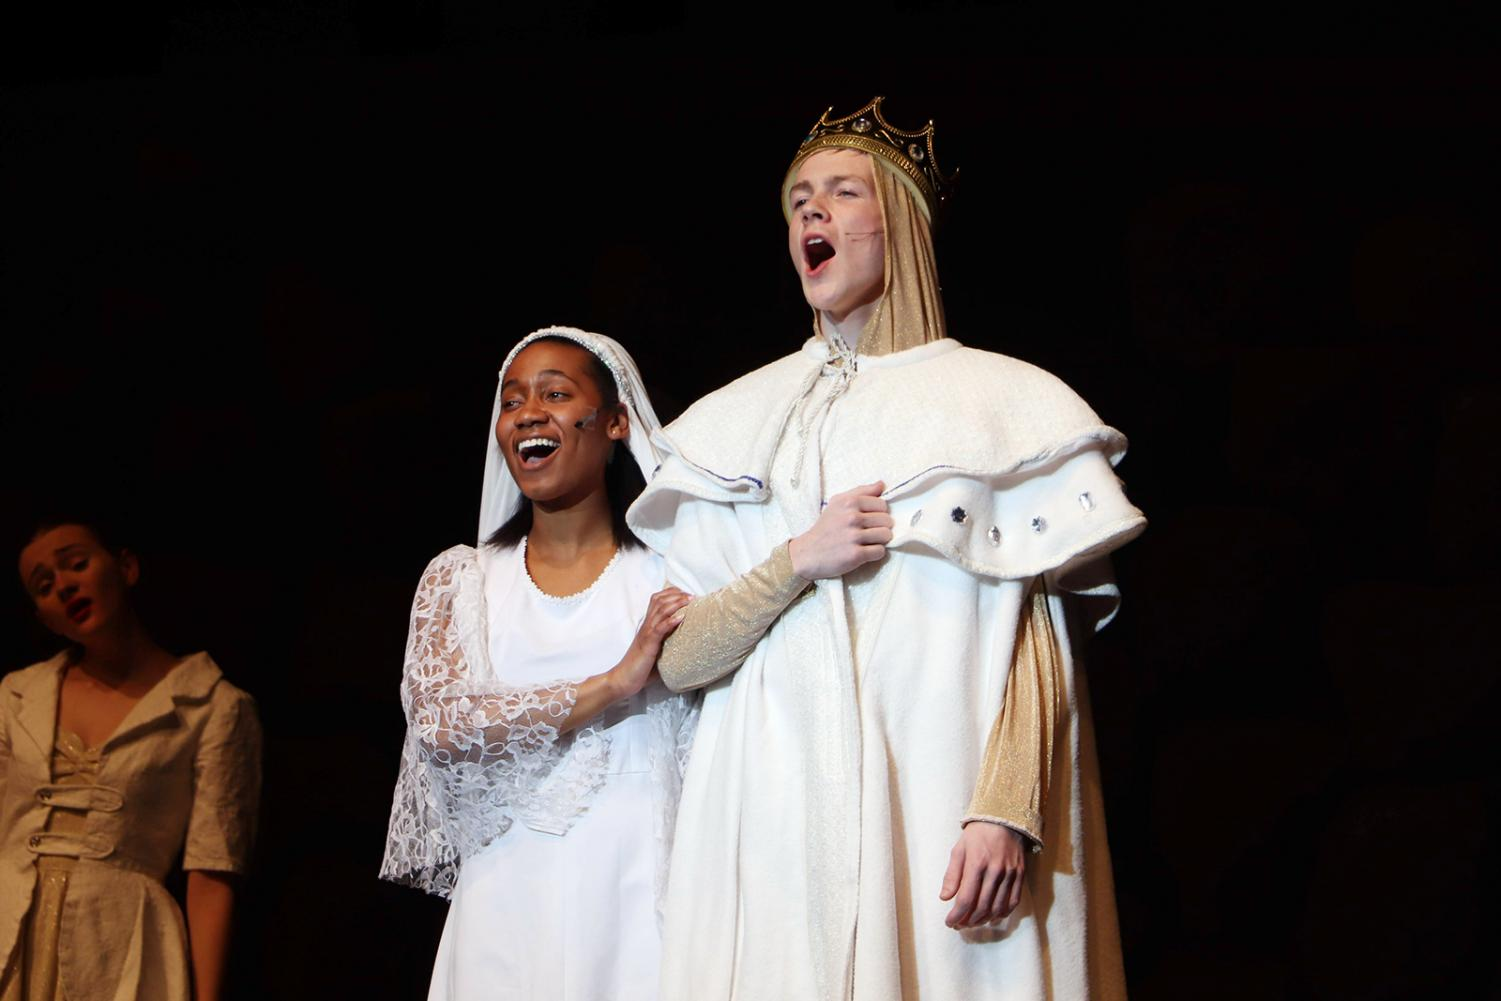 In+harmony%2C+senior+Tiffany+Smith+and+junior+Jack+Malin+stand+side+by+side+during+the+finale+of+the+winter+musical%2C+Spamalot+on+Jan.+25.+The+wedding+scene+closed+out+the+show+for+the+last+time+and+wrapped+up+the+story+of+King+Arthur+and+his+search+for+the+Holy+Grail.+